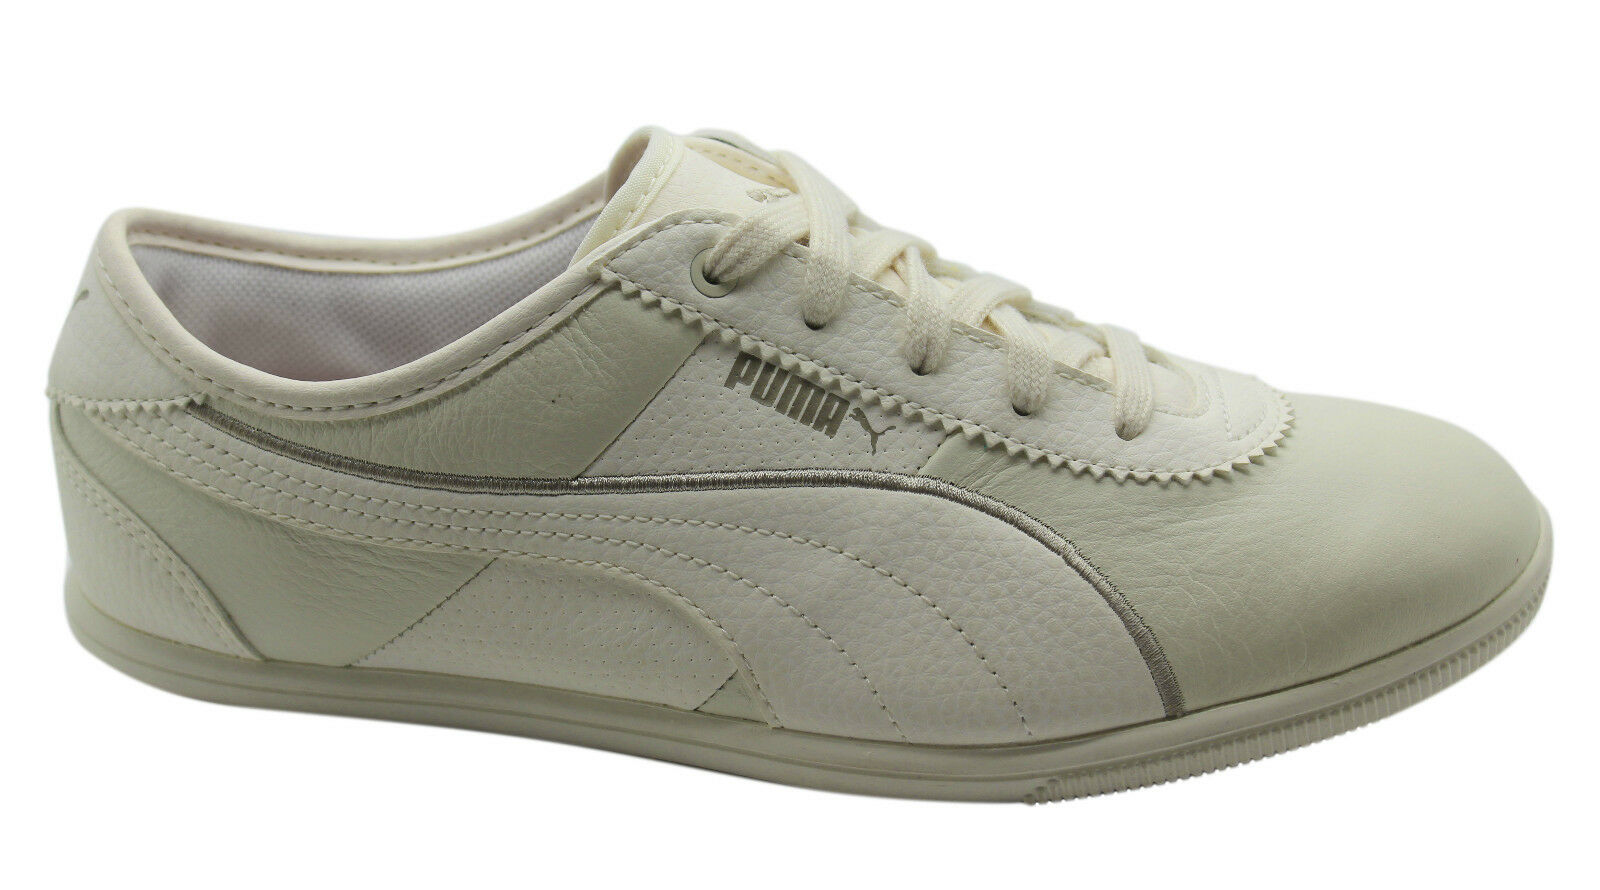 Puma Whitley Lux Damenschuhe Trainers Lace Niedrig Schuhes Cream Leder Lace Trainers Up 353948 01 D4 746fa9